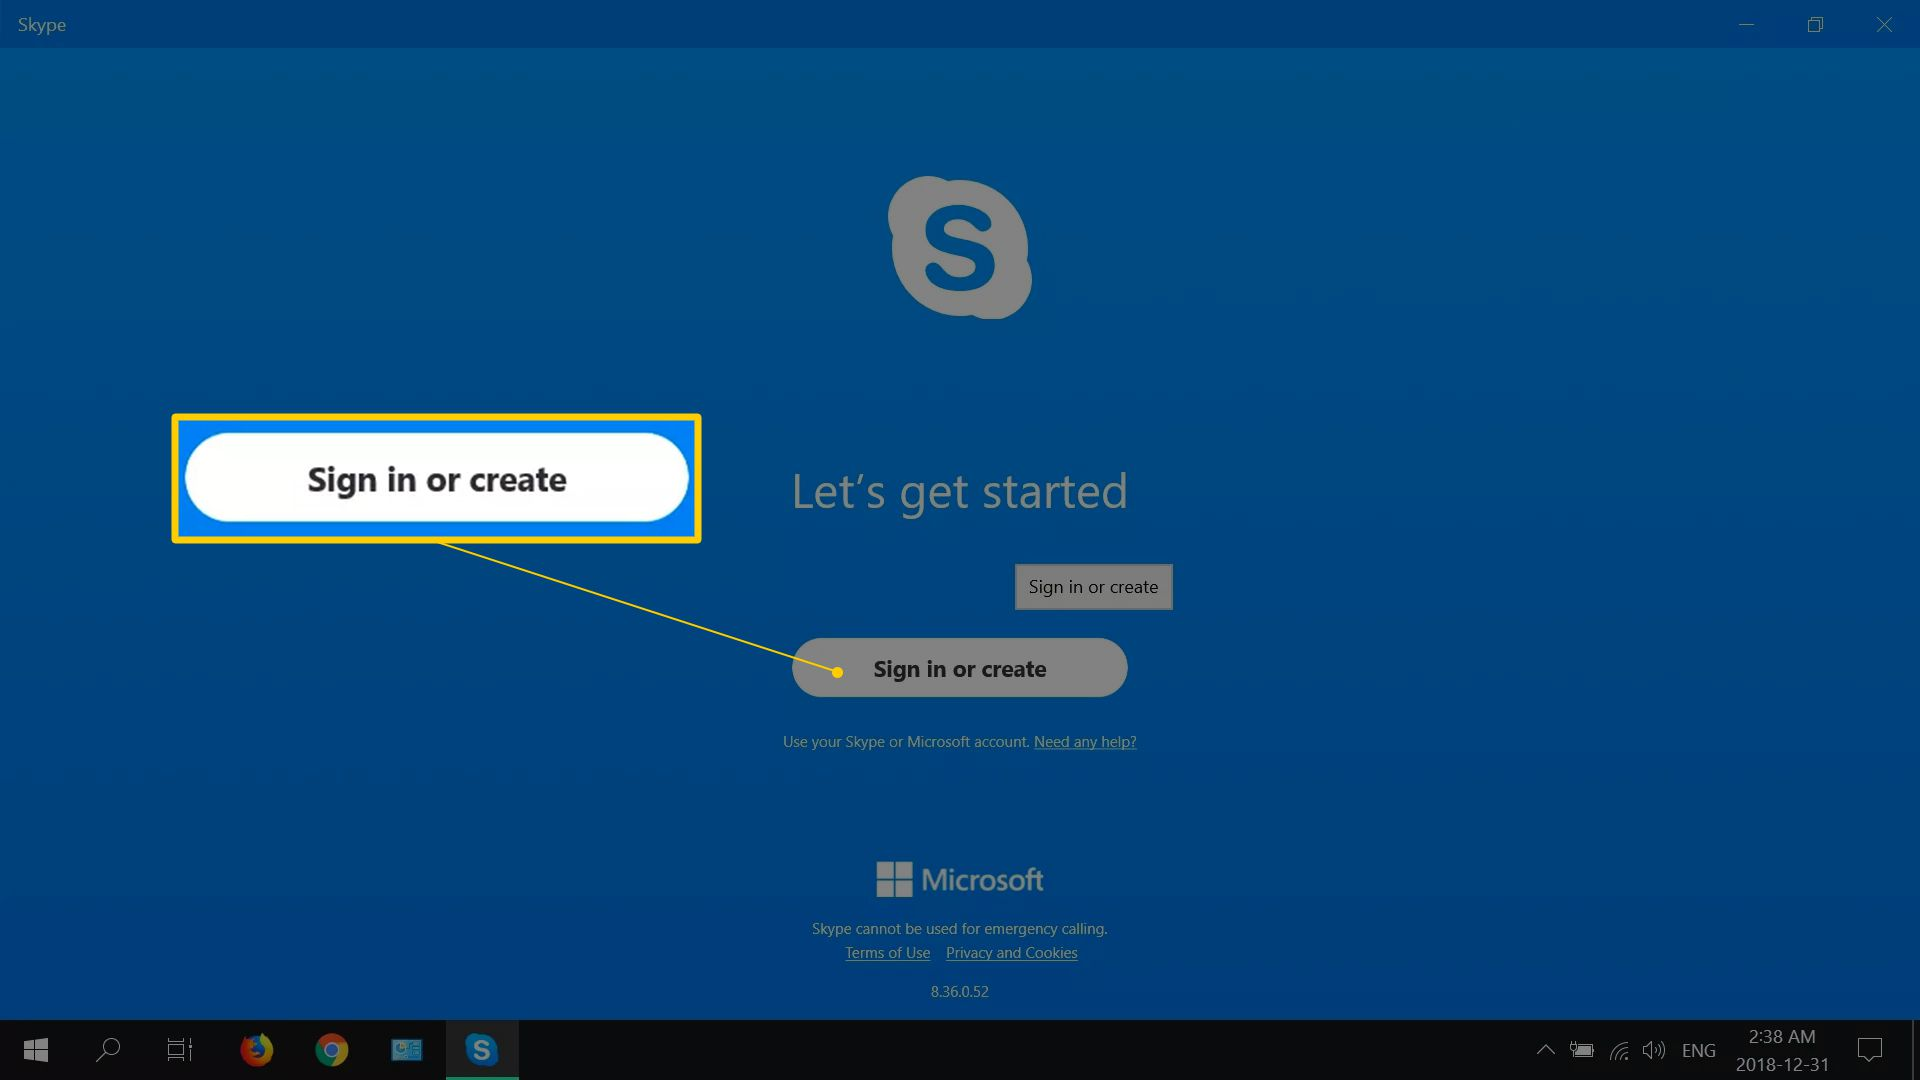 Sign in or create button on Skype's sign-in screen